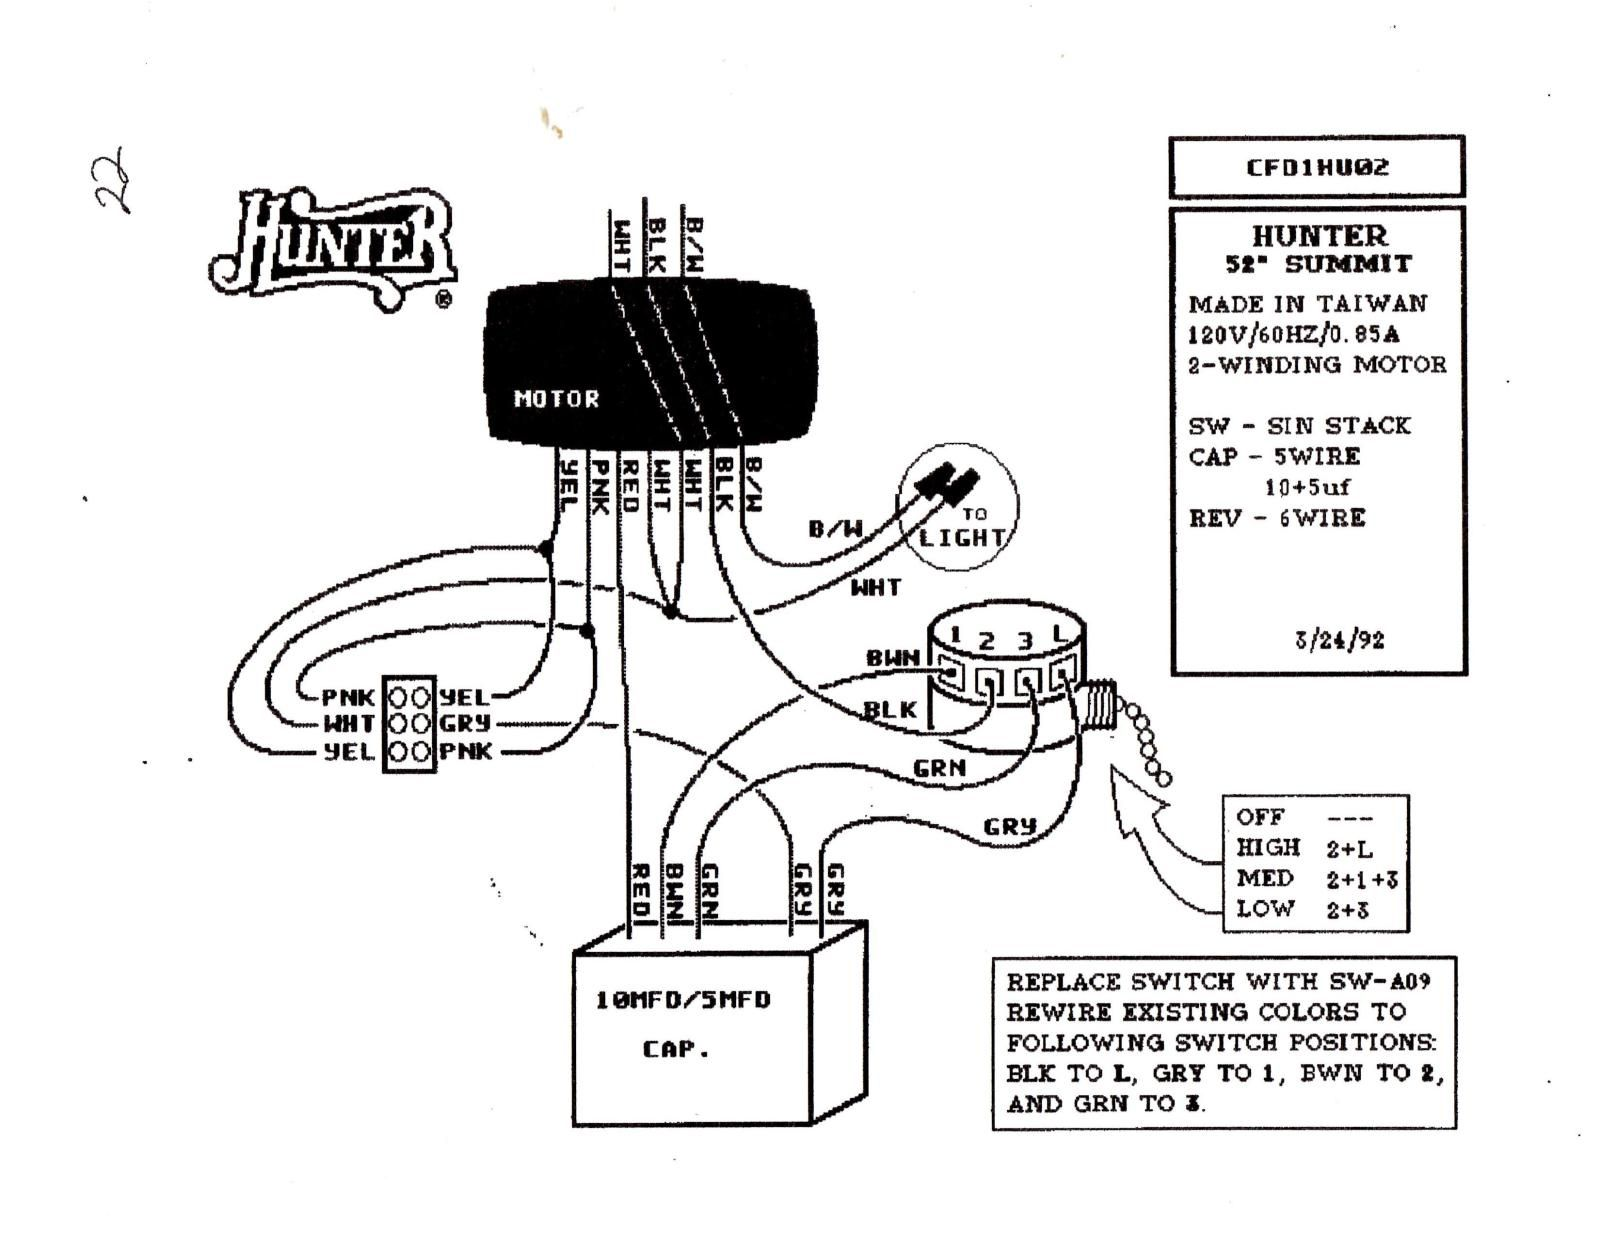 ceiling fan motor wiring schematic wiring diagram Ceiling Fan Control Wiring hunter ceiling fan capacitor wiring harness for videos wiring diagramwiring diagram for hunter ceiling fan wiring